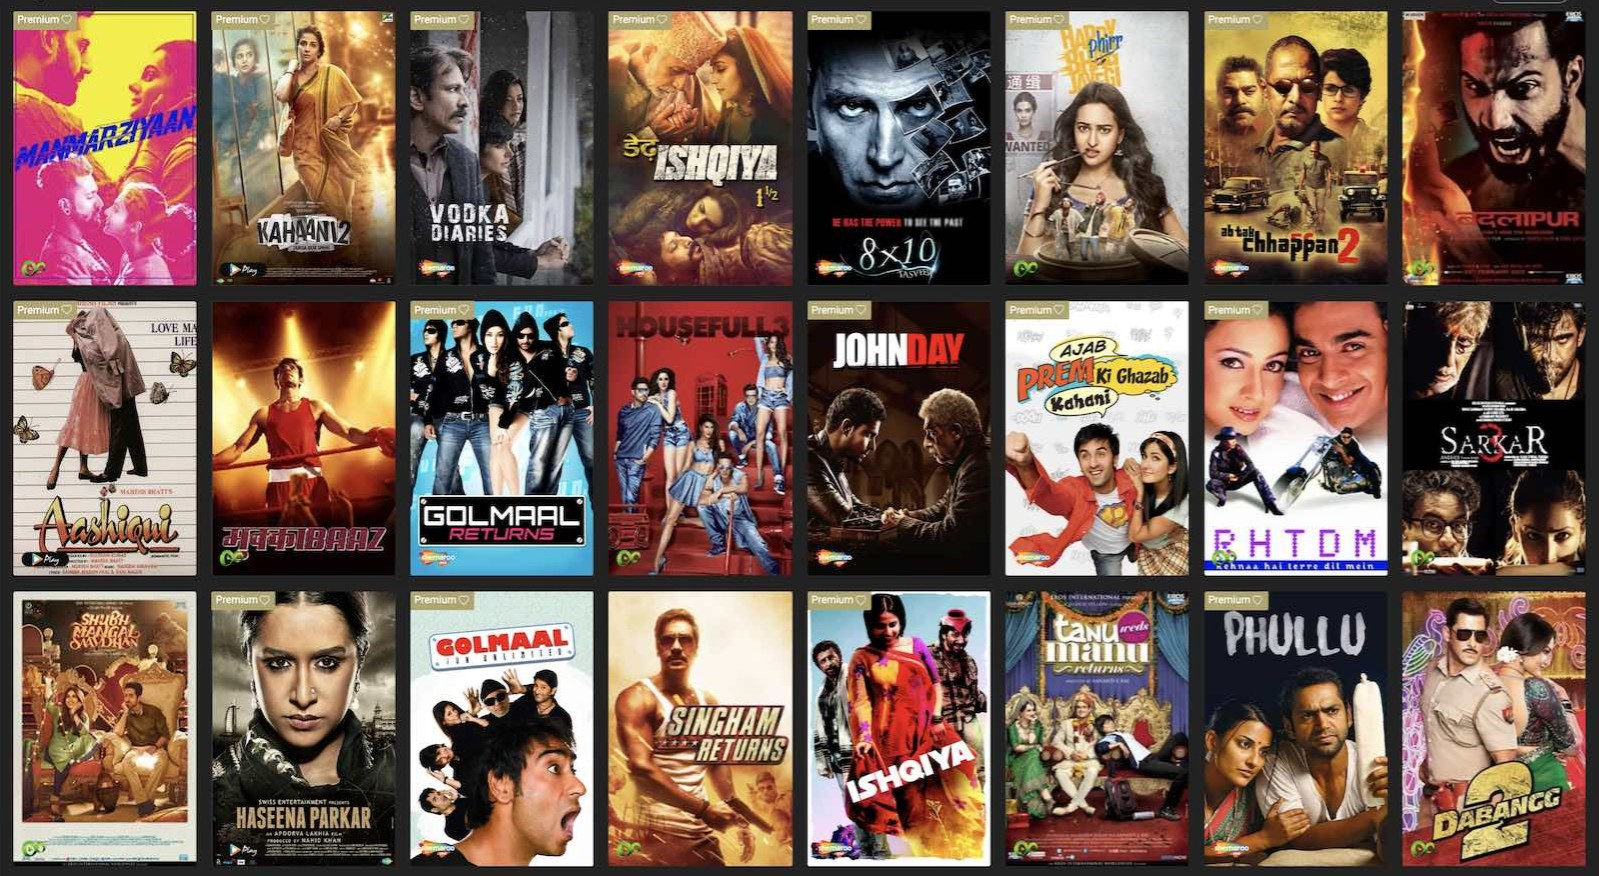 9kmovies Website 2020 Hindi Latest Movies Download Is It Legal Telegraph Star